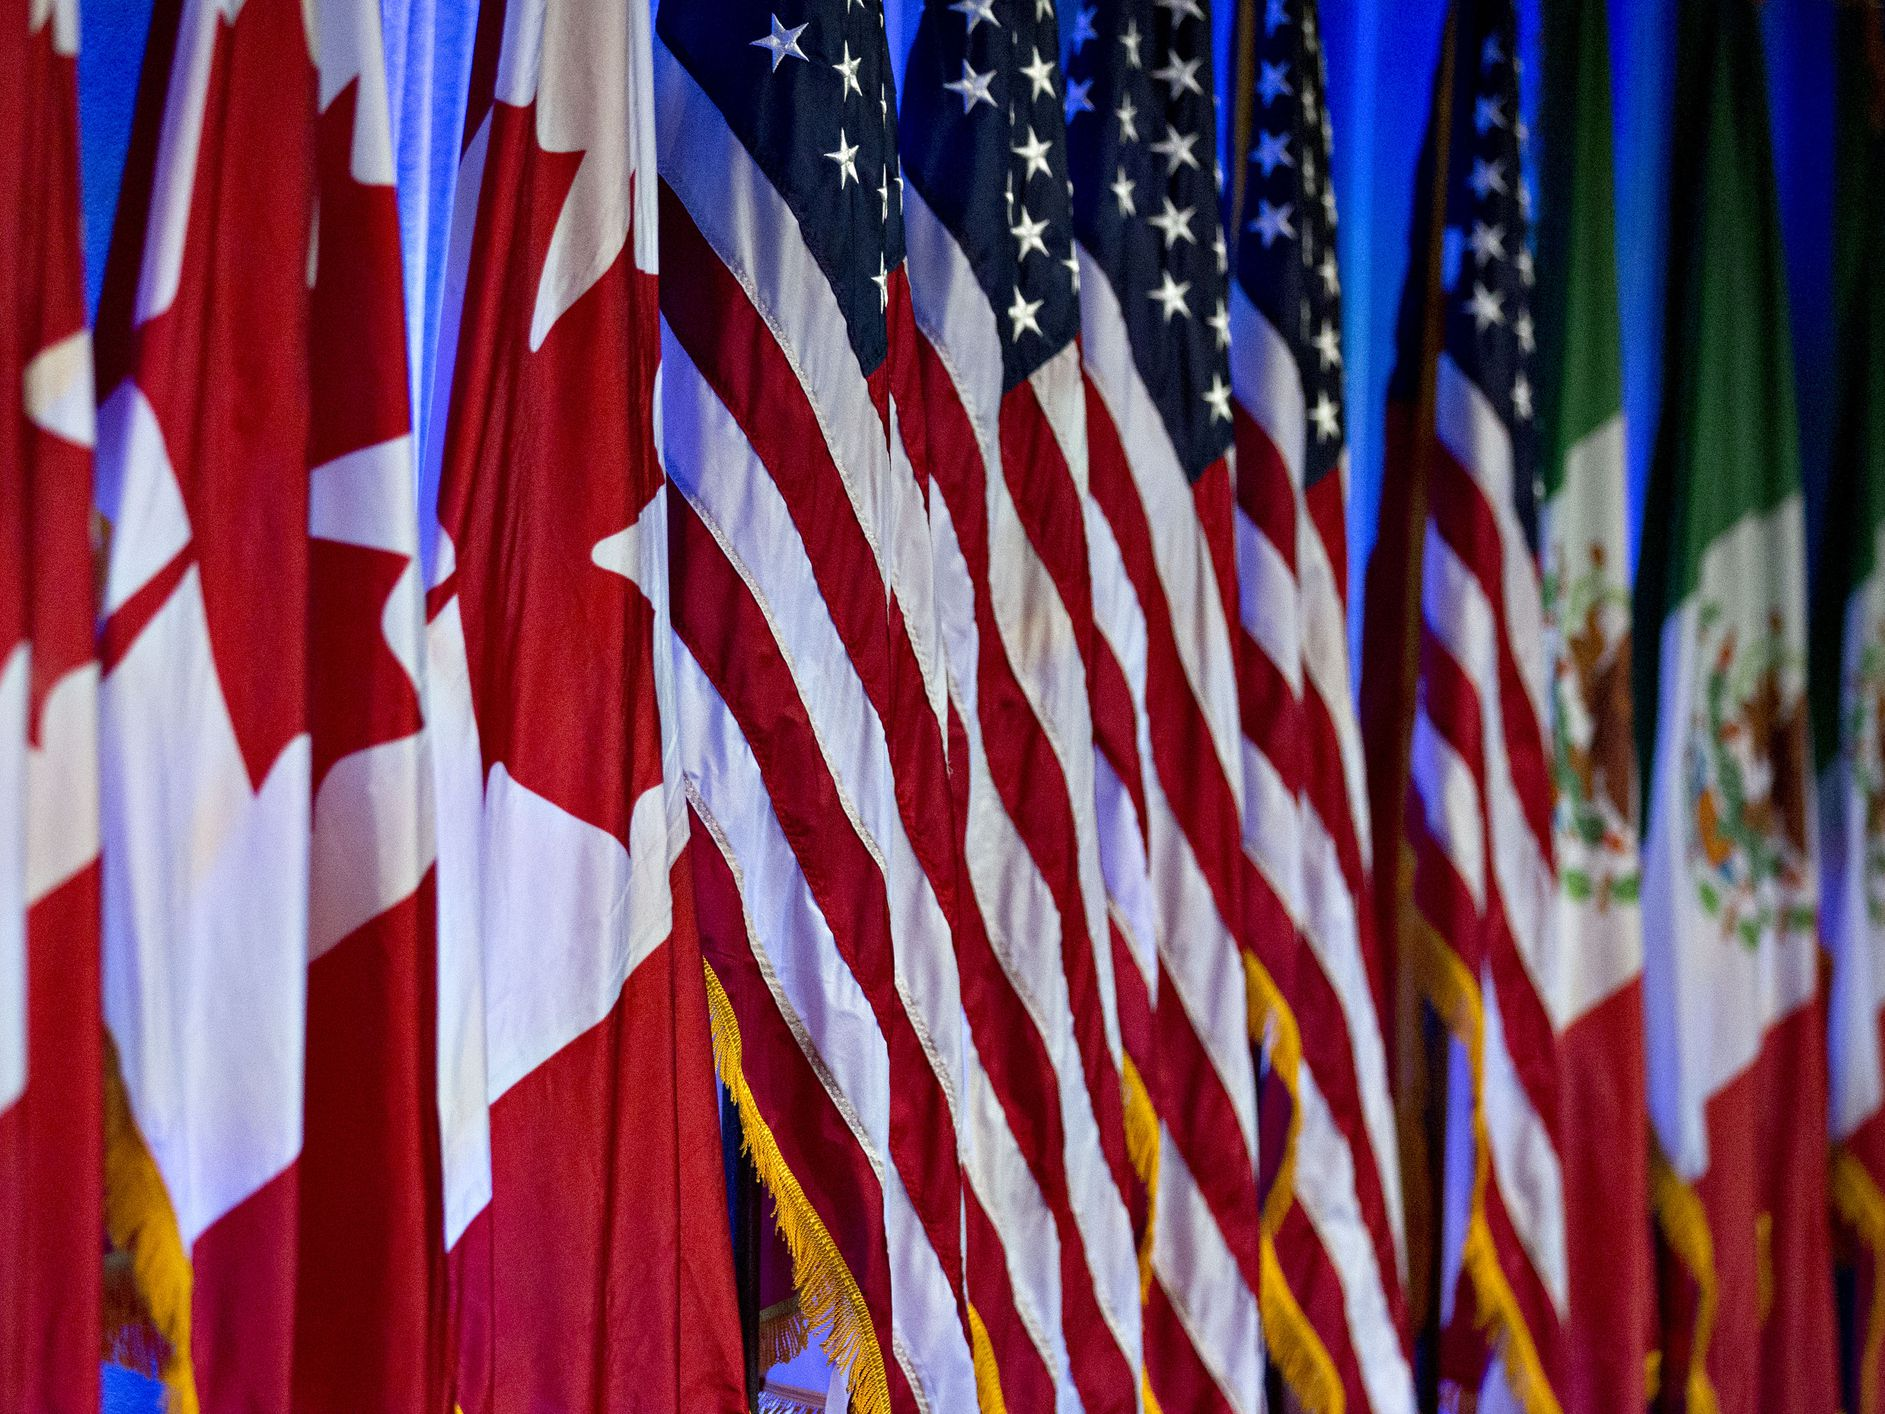 NAFTA Definition: What It Does, Why It's Important